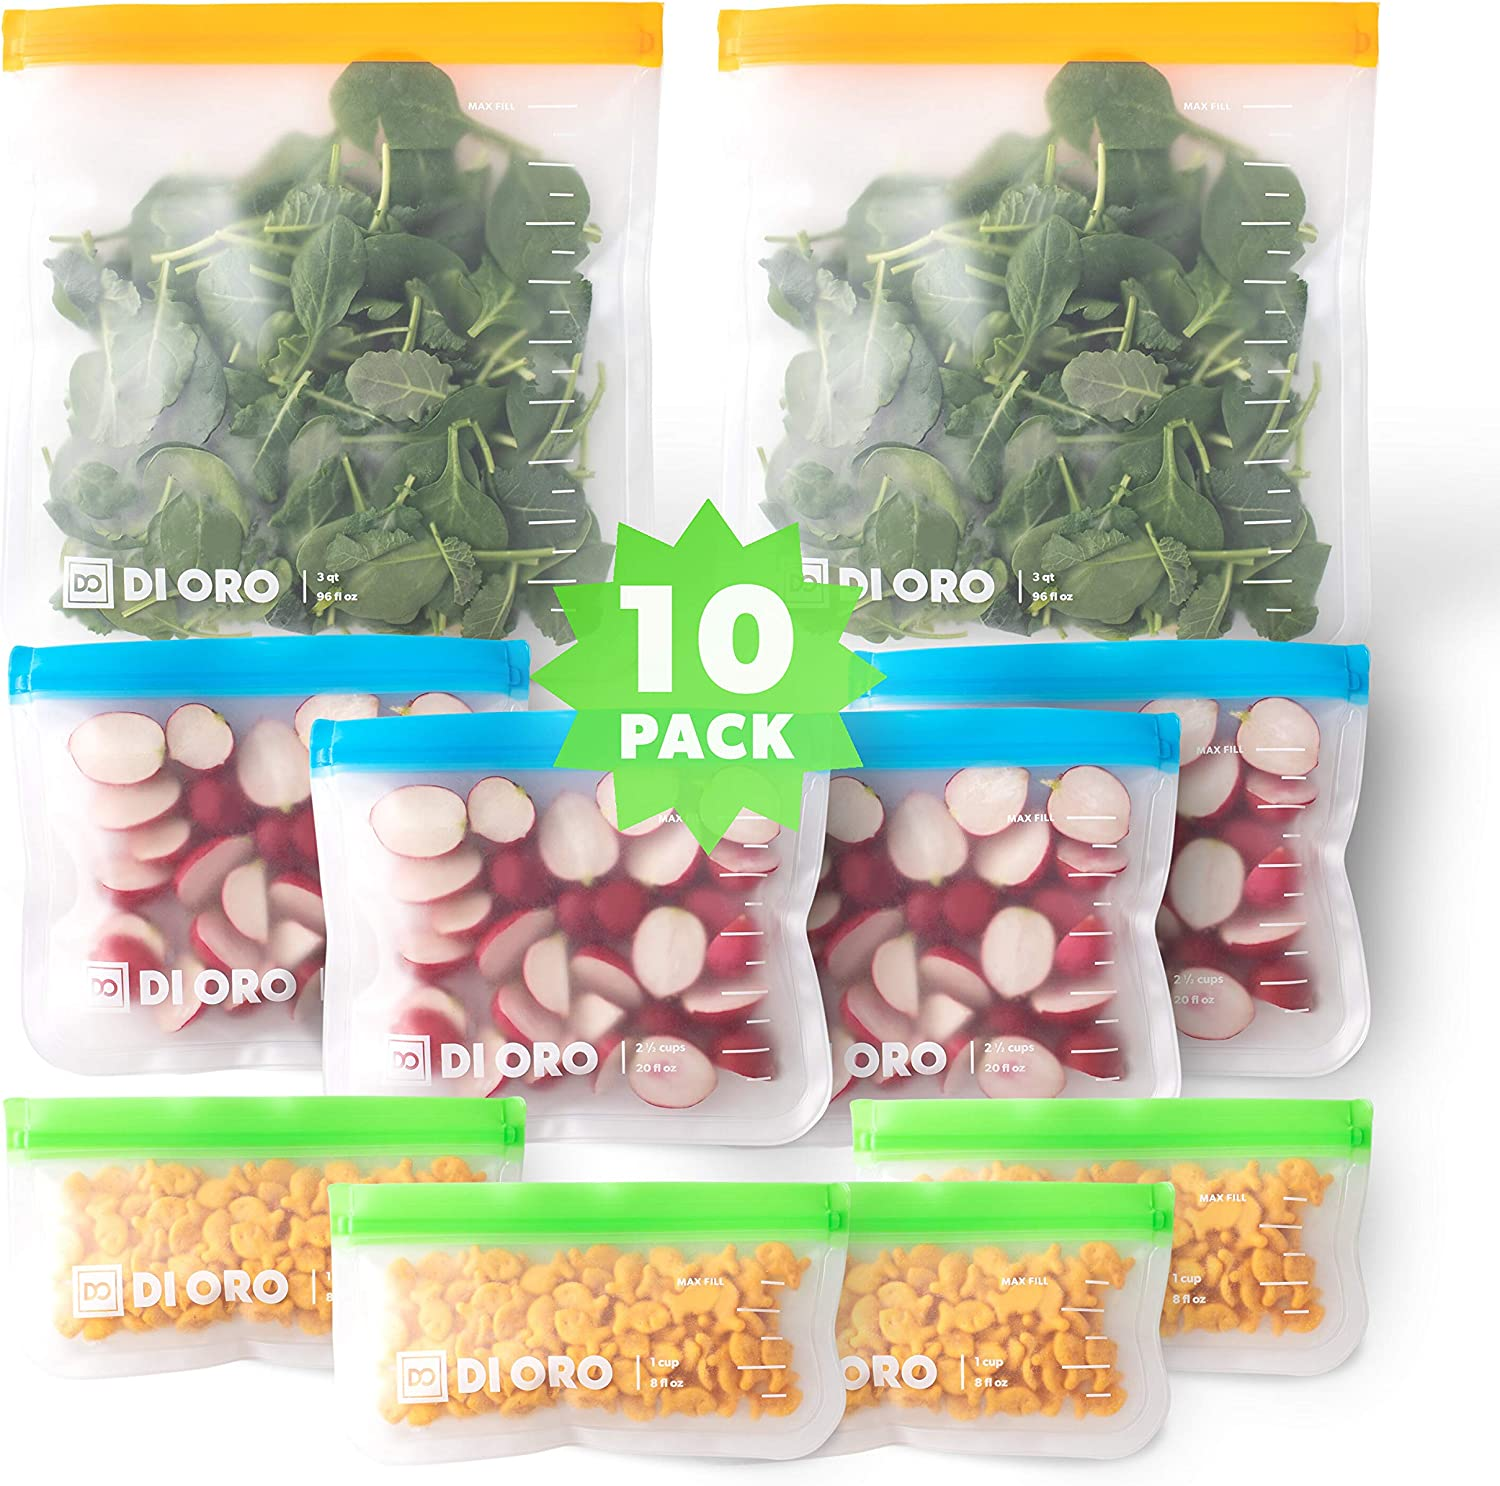 New DI ORO Reusable Snack Bags - 100% Food Safe BPA Free Freezer Safe Bags - 2 Gallon, 4 Sandwich, and 4 Small Bags - Thick, Leakproof, and Washable - Easy Ziplock Reusable Sealing System (10 Pc Set)